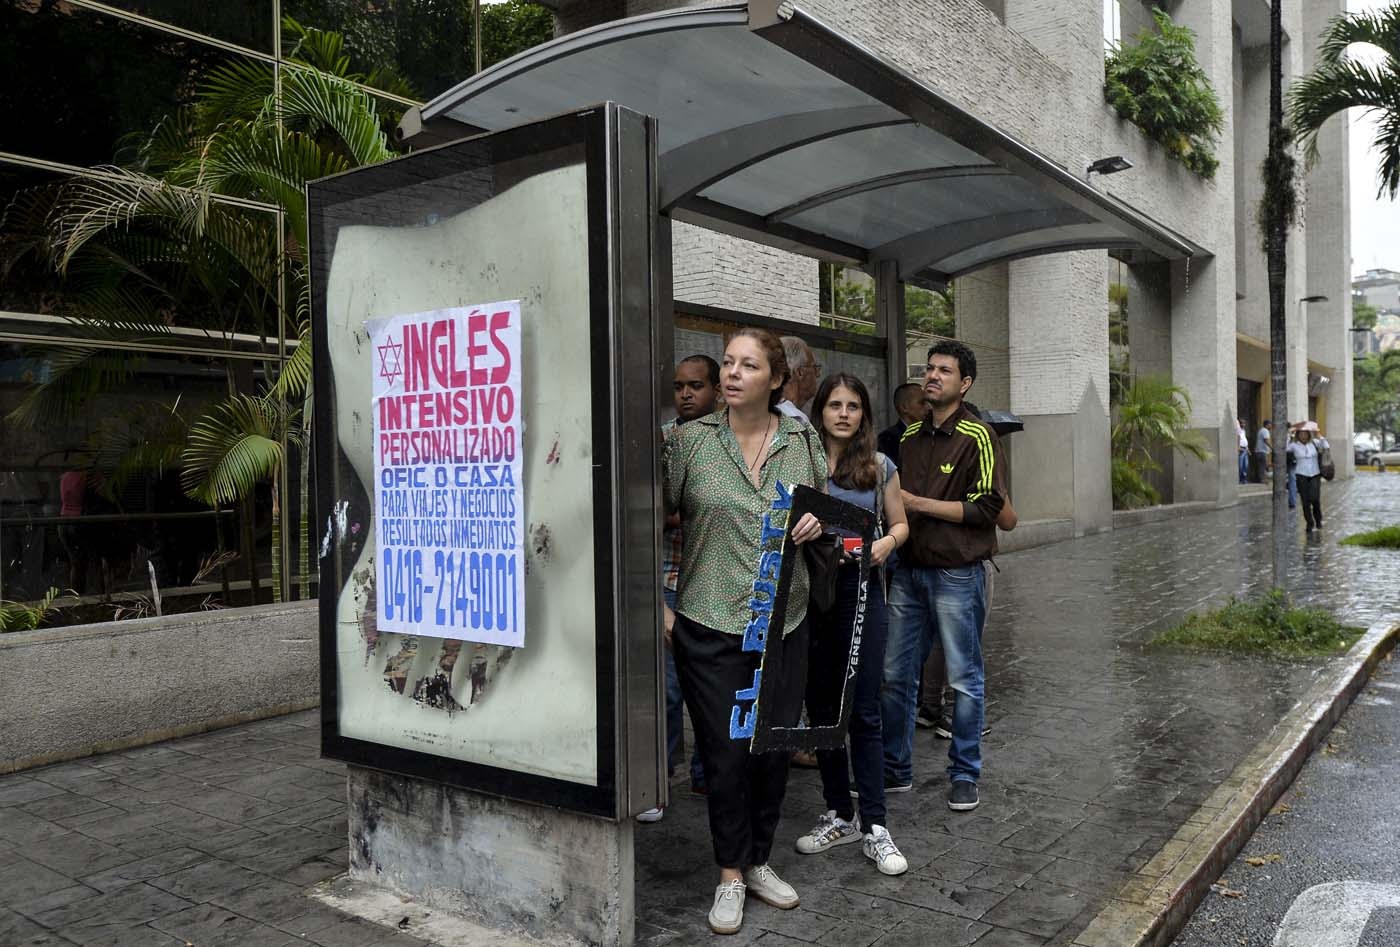 Laura Castillo (L), Abril Mejias (C) and Dereck Blanco wait for a bus to give an on-board presentation of the Bus TV news in Caracas, Venezuela, on June 6, 2017. A group of young Venezuelan reporters board buses to present the news, as part of a project to keep people informed in the face of what the opposition and the national journalists' union describe as censorship by the government of Nicolas Maduro. / AFP PHOTO / LUIS ROBAYO